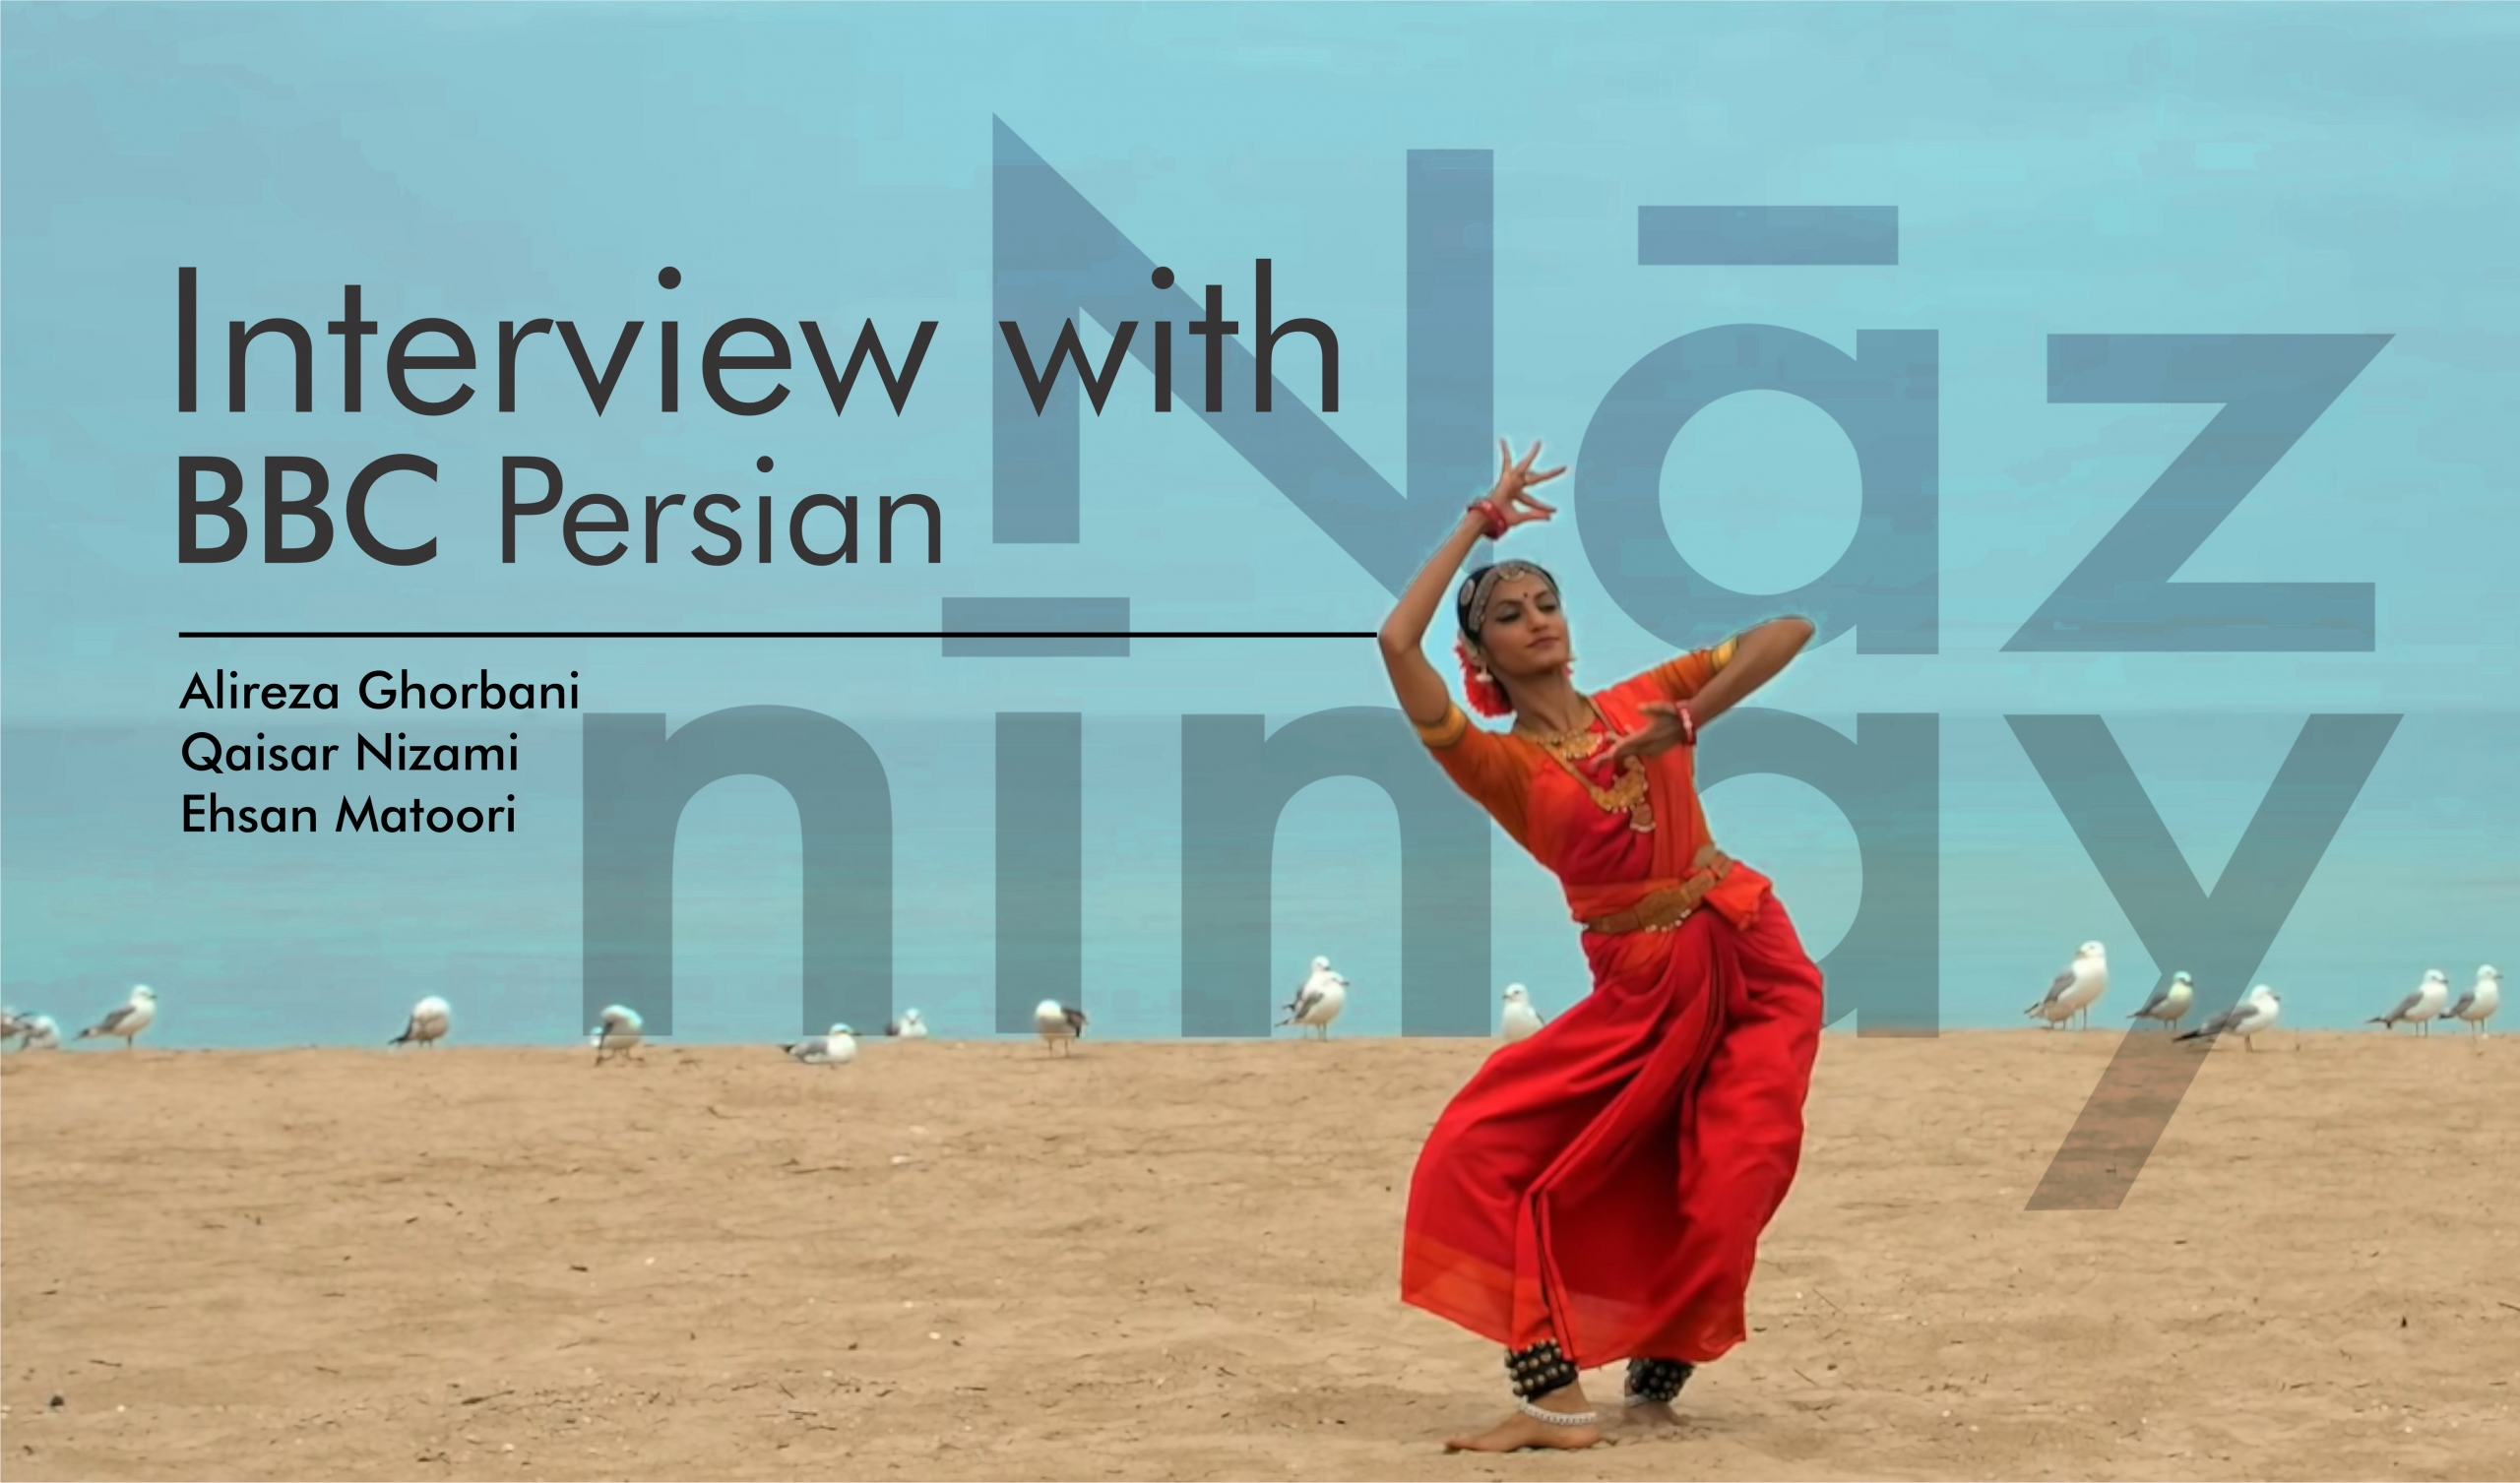 Interview with BBC Persian